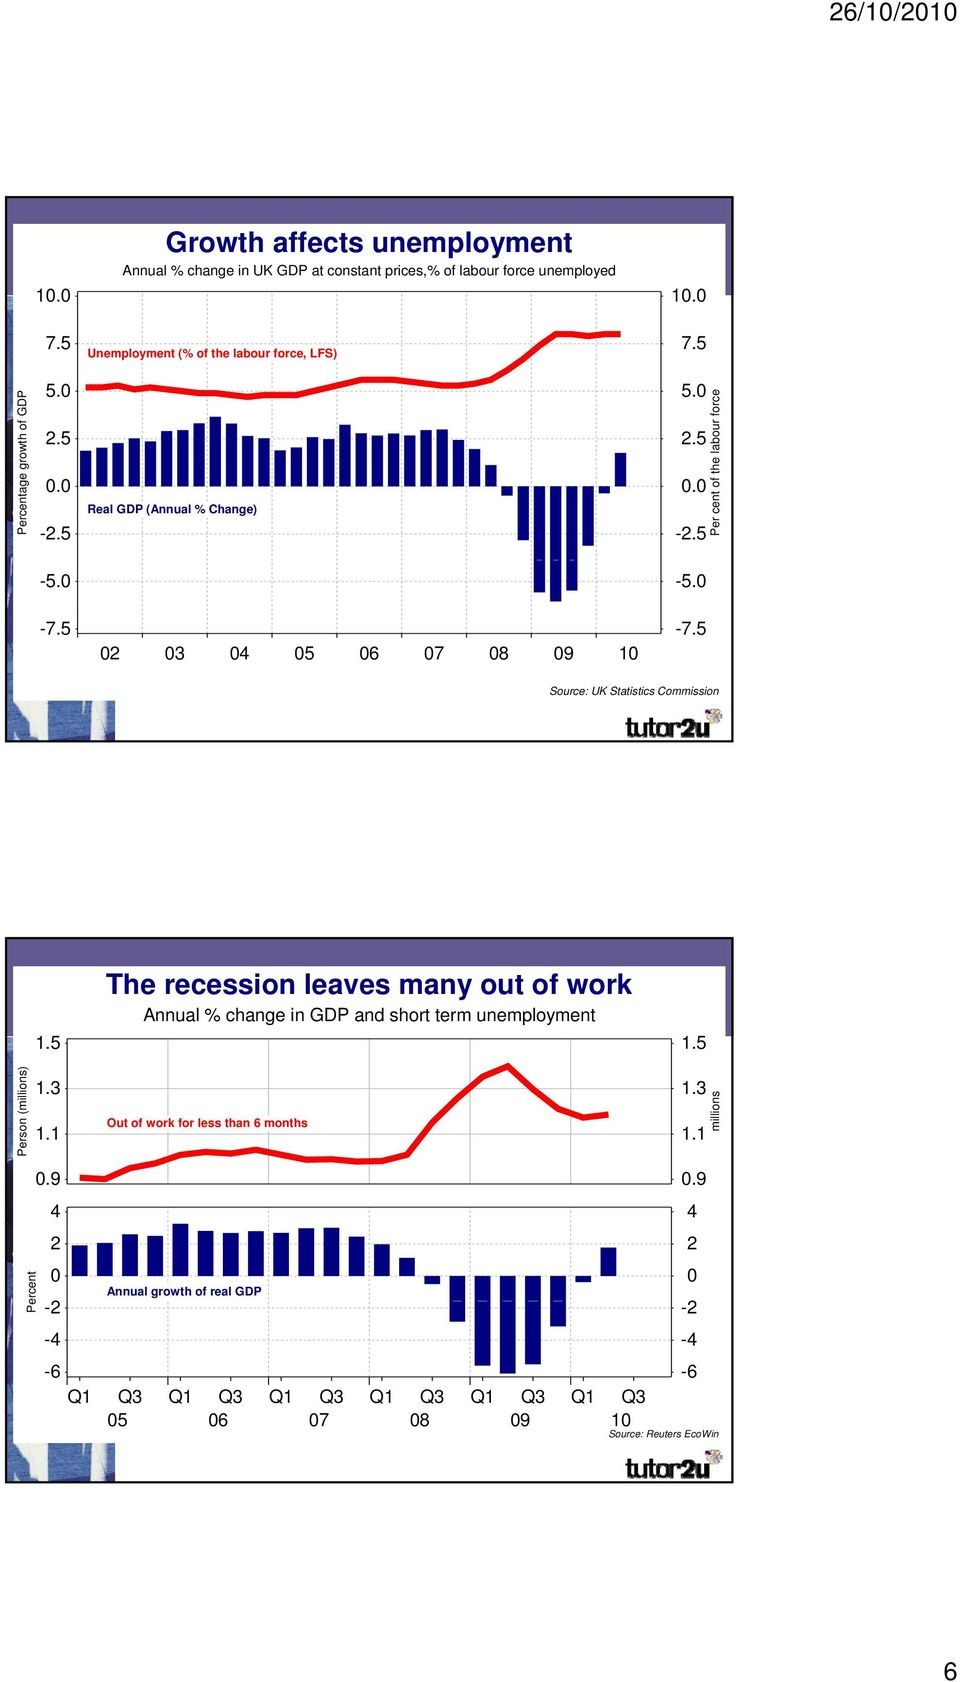 5 Source: UK Statistics Commission The Short recession term leaves unemployment many out of work Annual % change in GDP and short term unemployment 1.5 1.5 n (millions) Person 1.